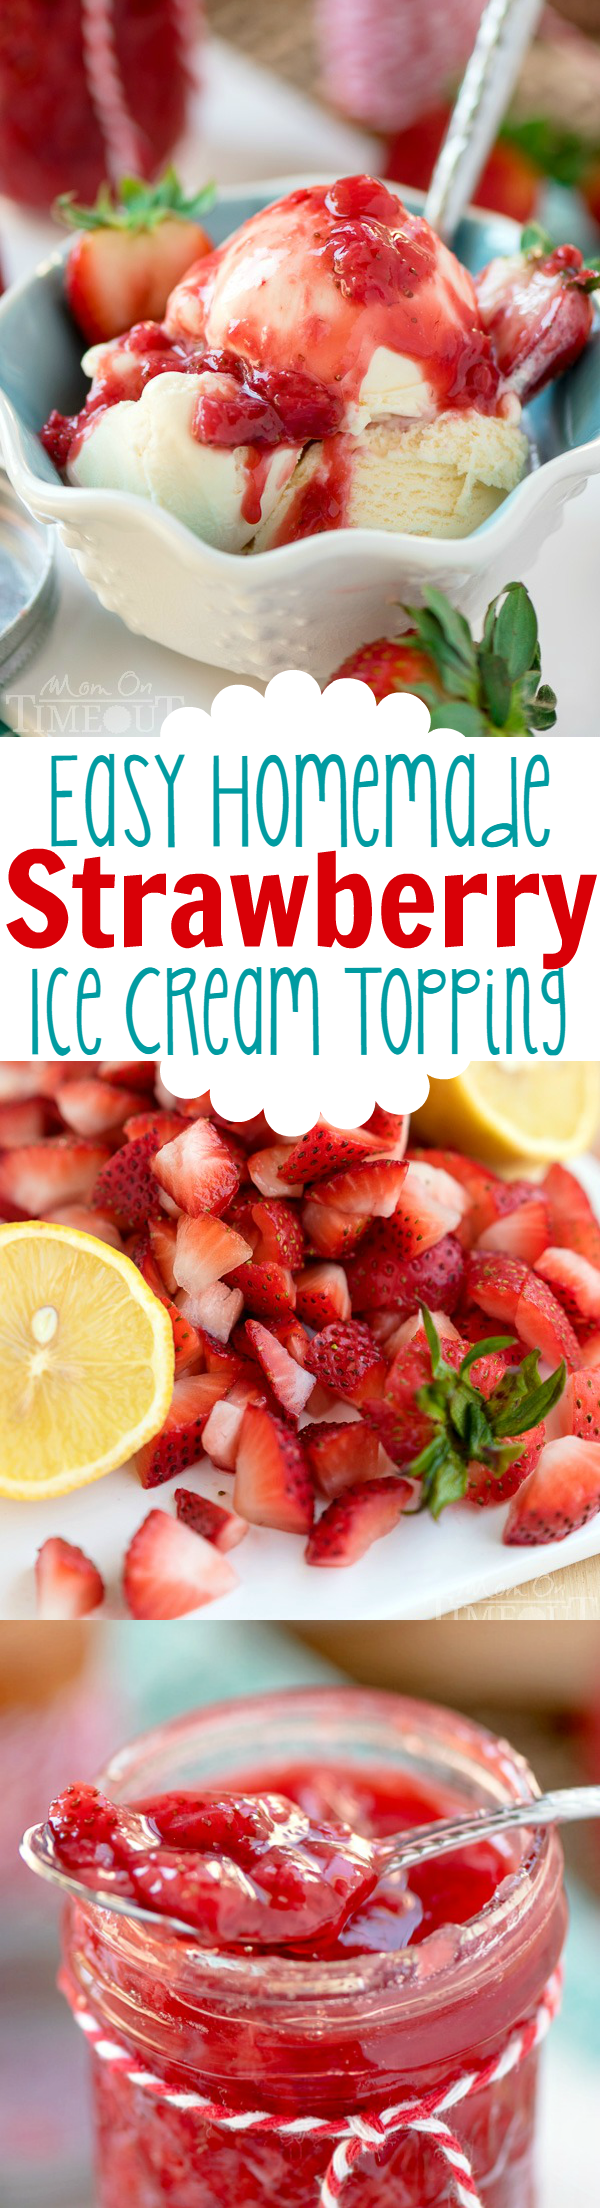 This Easy Homemade Strawberry Ice Cream Topping recipe is the perfect way to jazz up your ice cream tonight! Also the perfect topping for waffles, French toast, and so much more! Easy Homemade Strawberry Ice Cream Topping recipe is the perfect way to jazz up your ice cream tonight! Also the perfect topping for waffles, French toast, and so much more! |